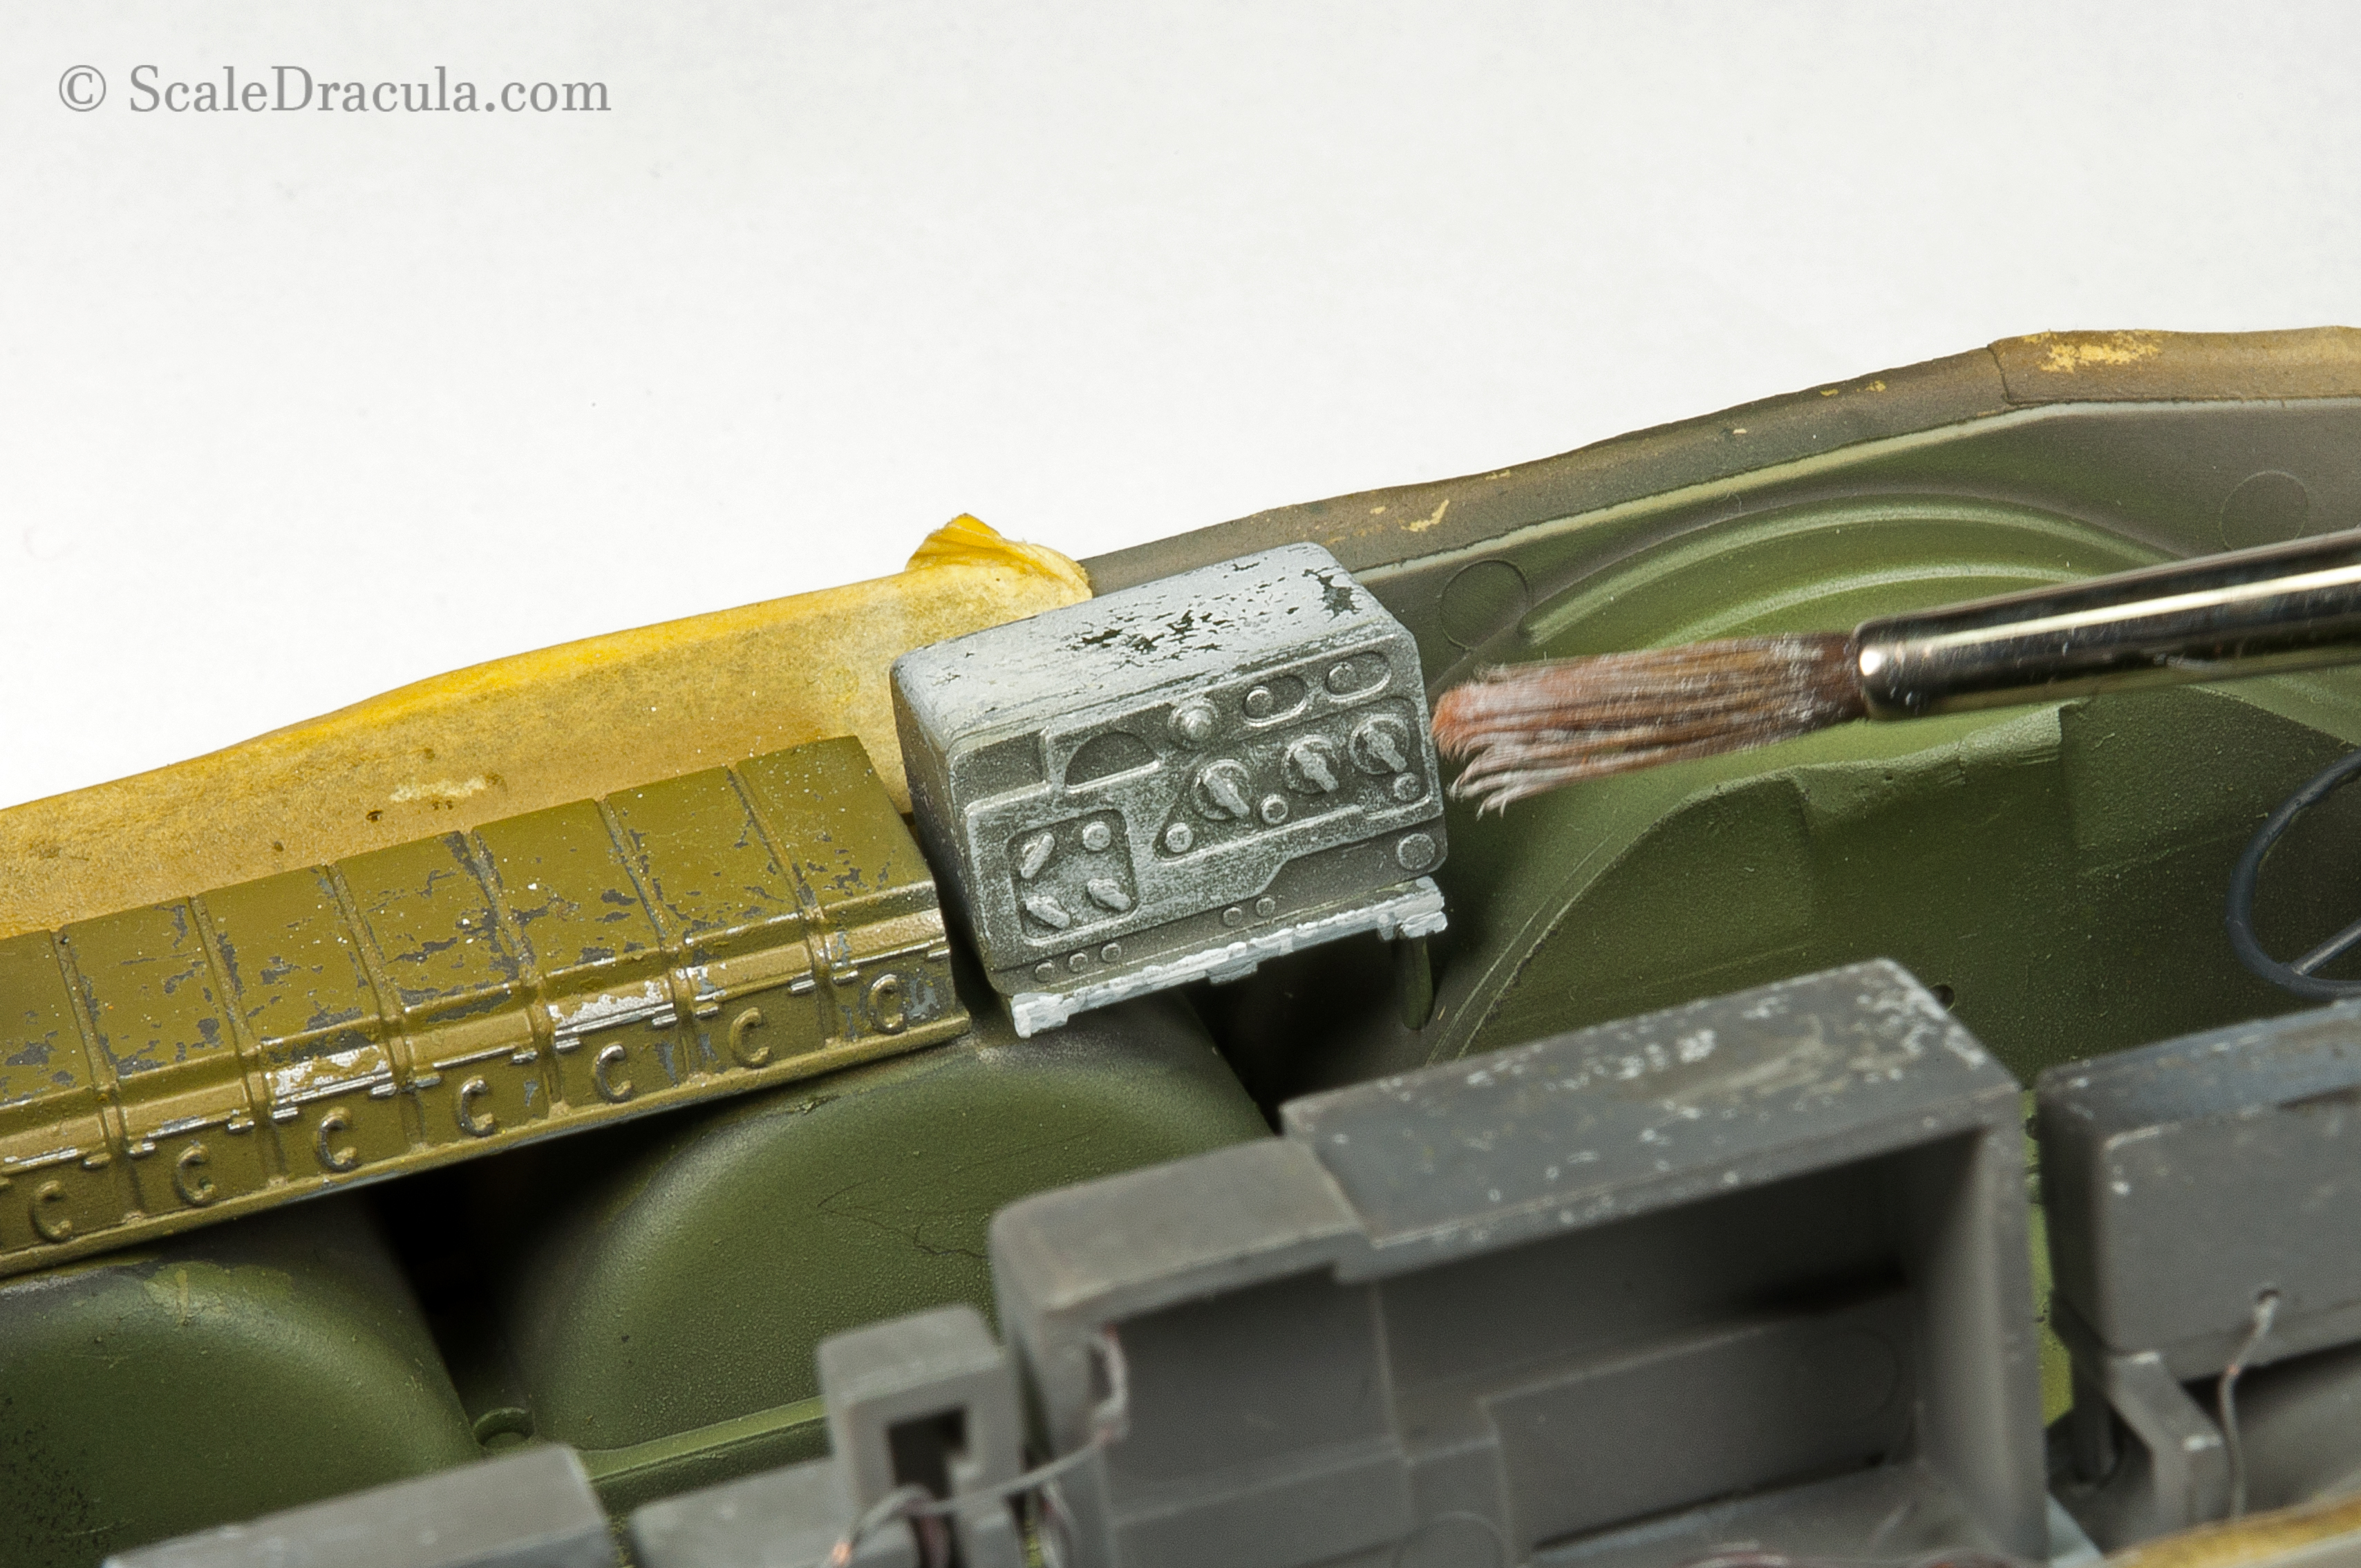 Dry-brushing aluminium colour, BRDM-2 by Trumpeter